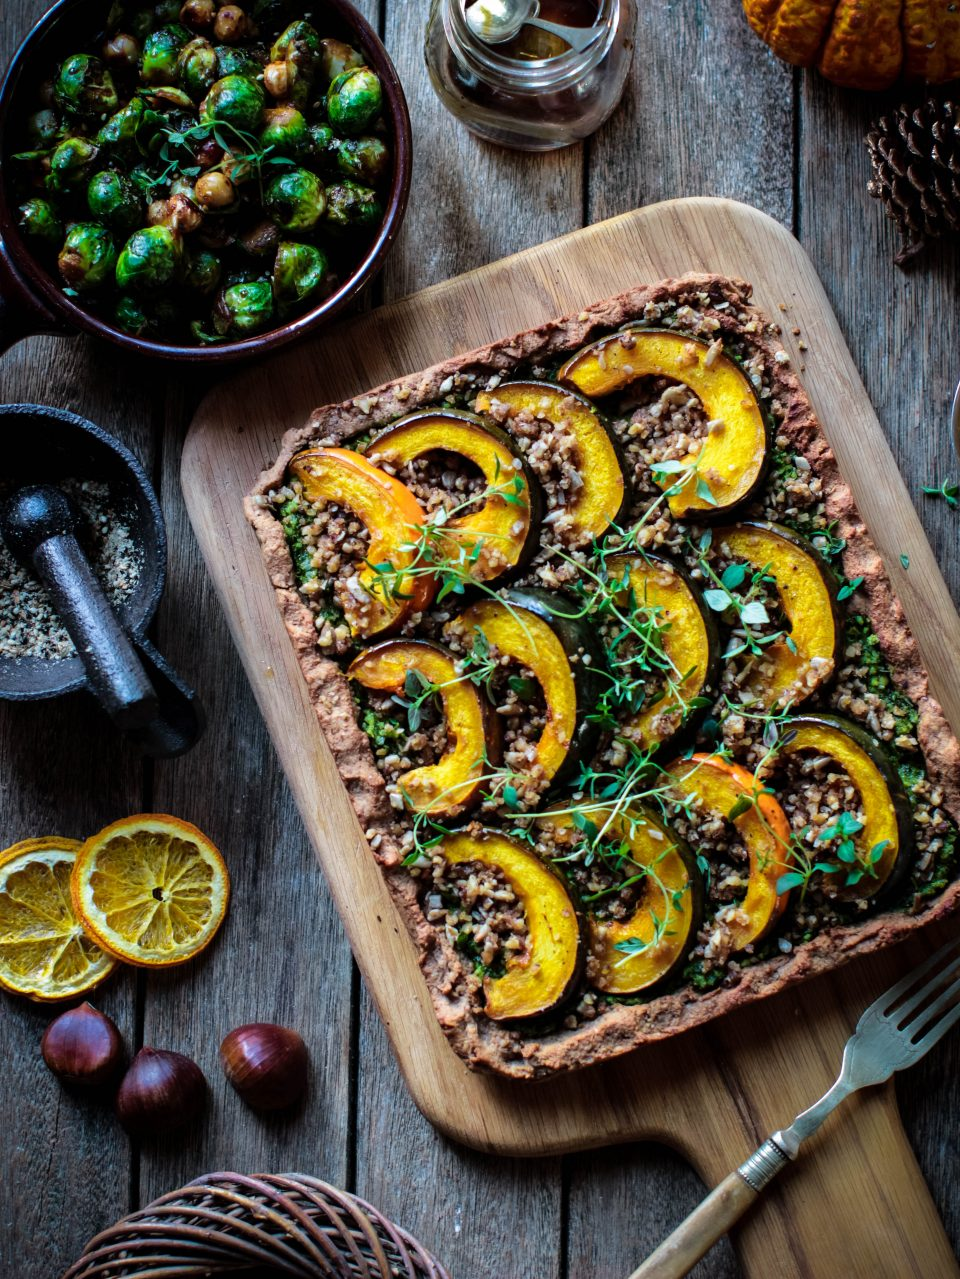 Organic feed your happy christmas chestnut squash tart rebel so whats my perfect plant based christmas lunch well vegetables feature heavily lots of roast veg and parsnips braised red cabbage crispy roast forumfinder Choice Image